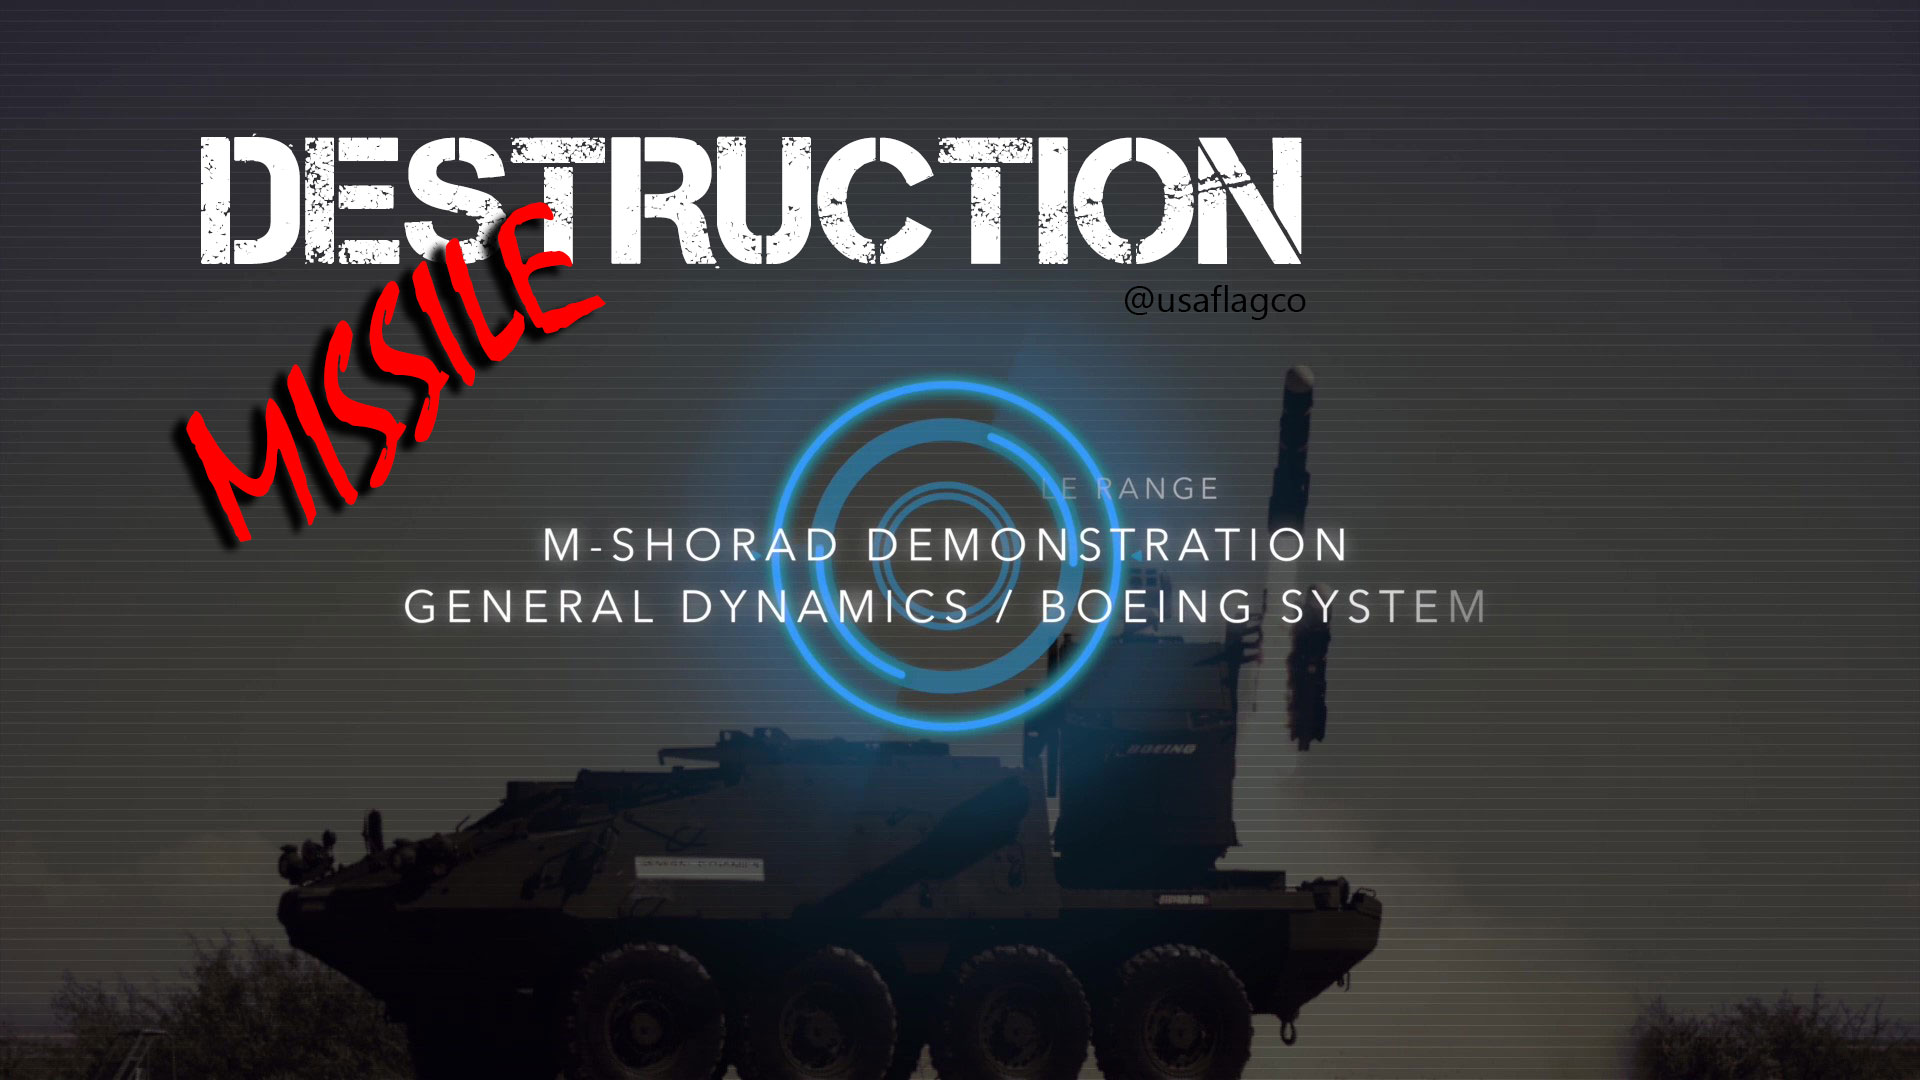 M-SHORAD Missile Demonstration (General Dynamics & Boeing System) - Amazing Destruction!